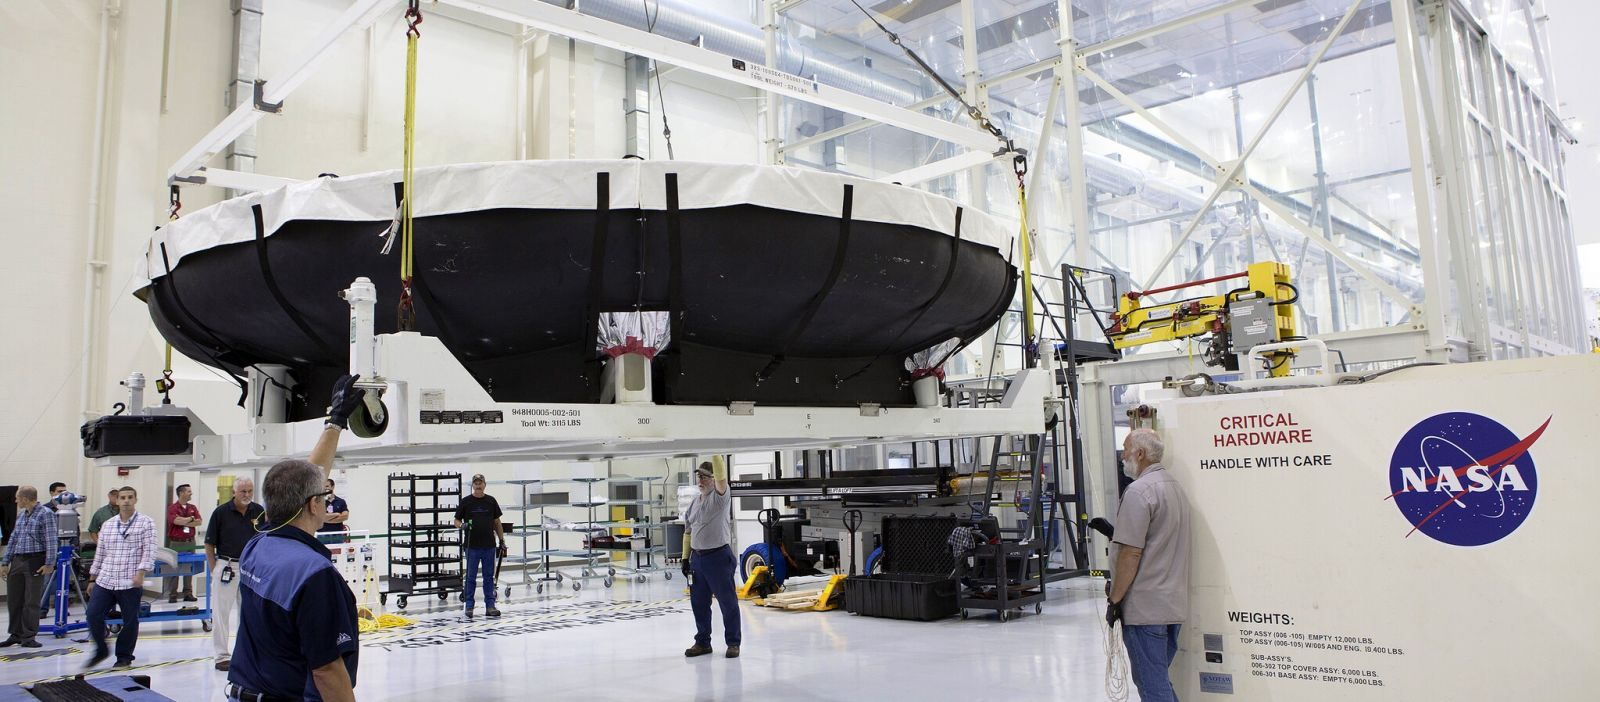 EM-1 Orion heat shield structure delivered to Kennedy Space Center.